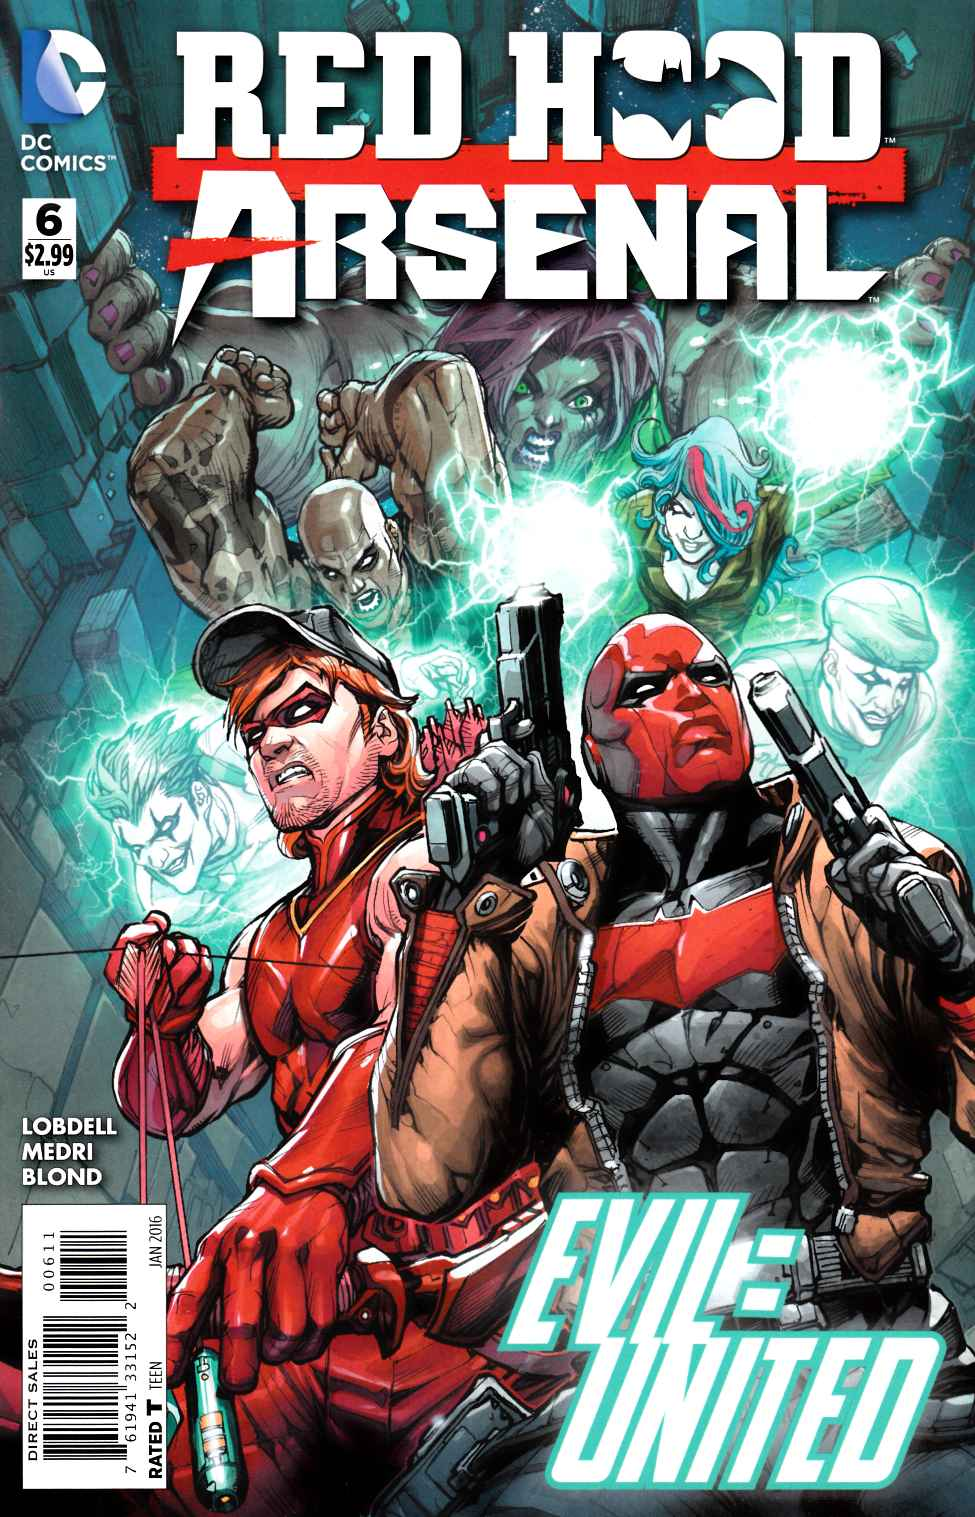 Red Hood Arsenal #6 [DC Comic]